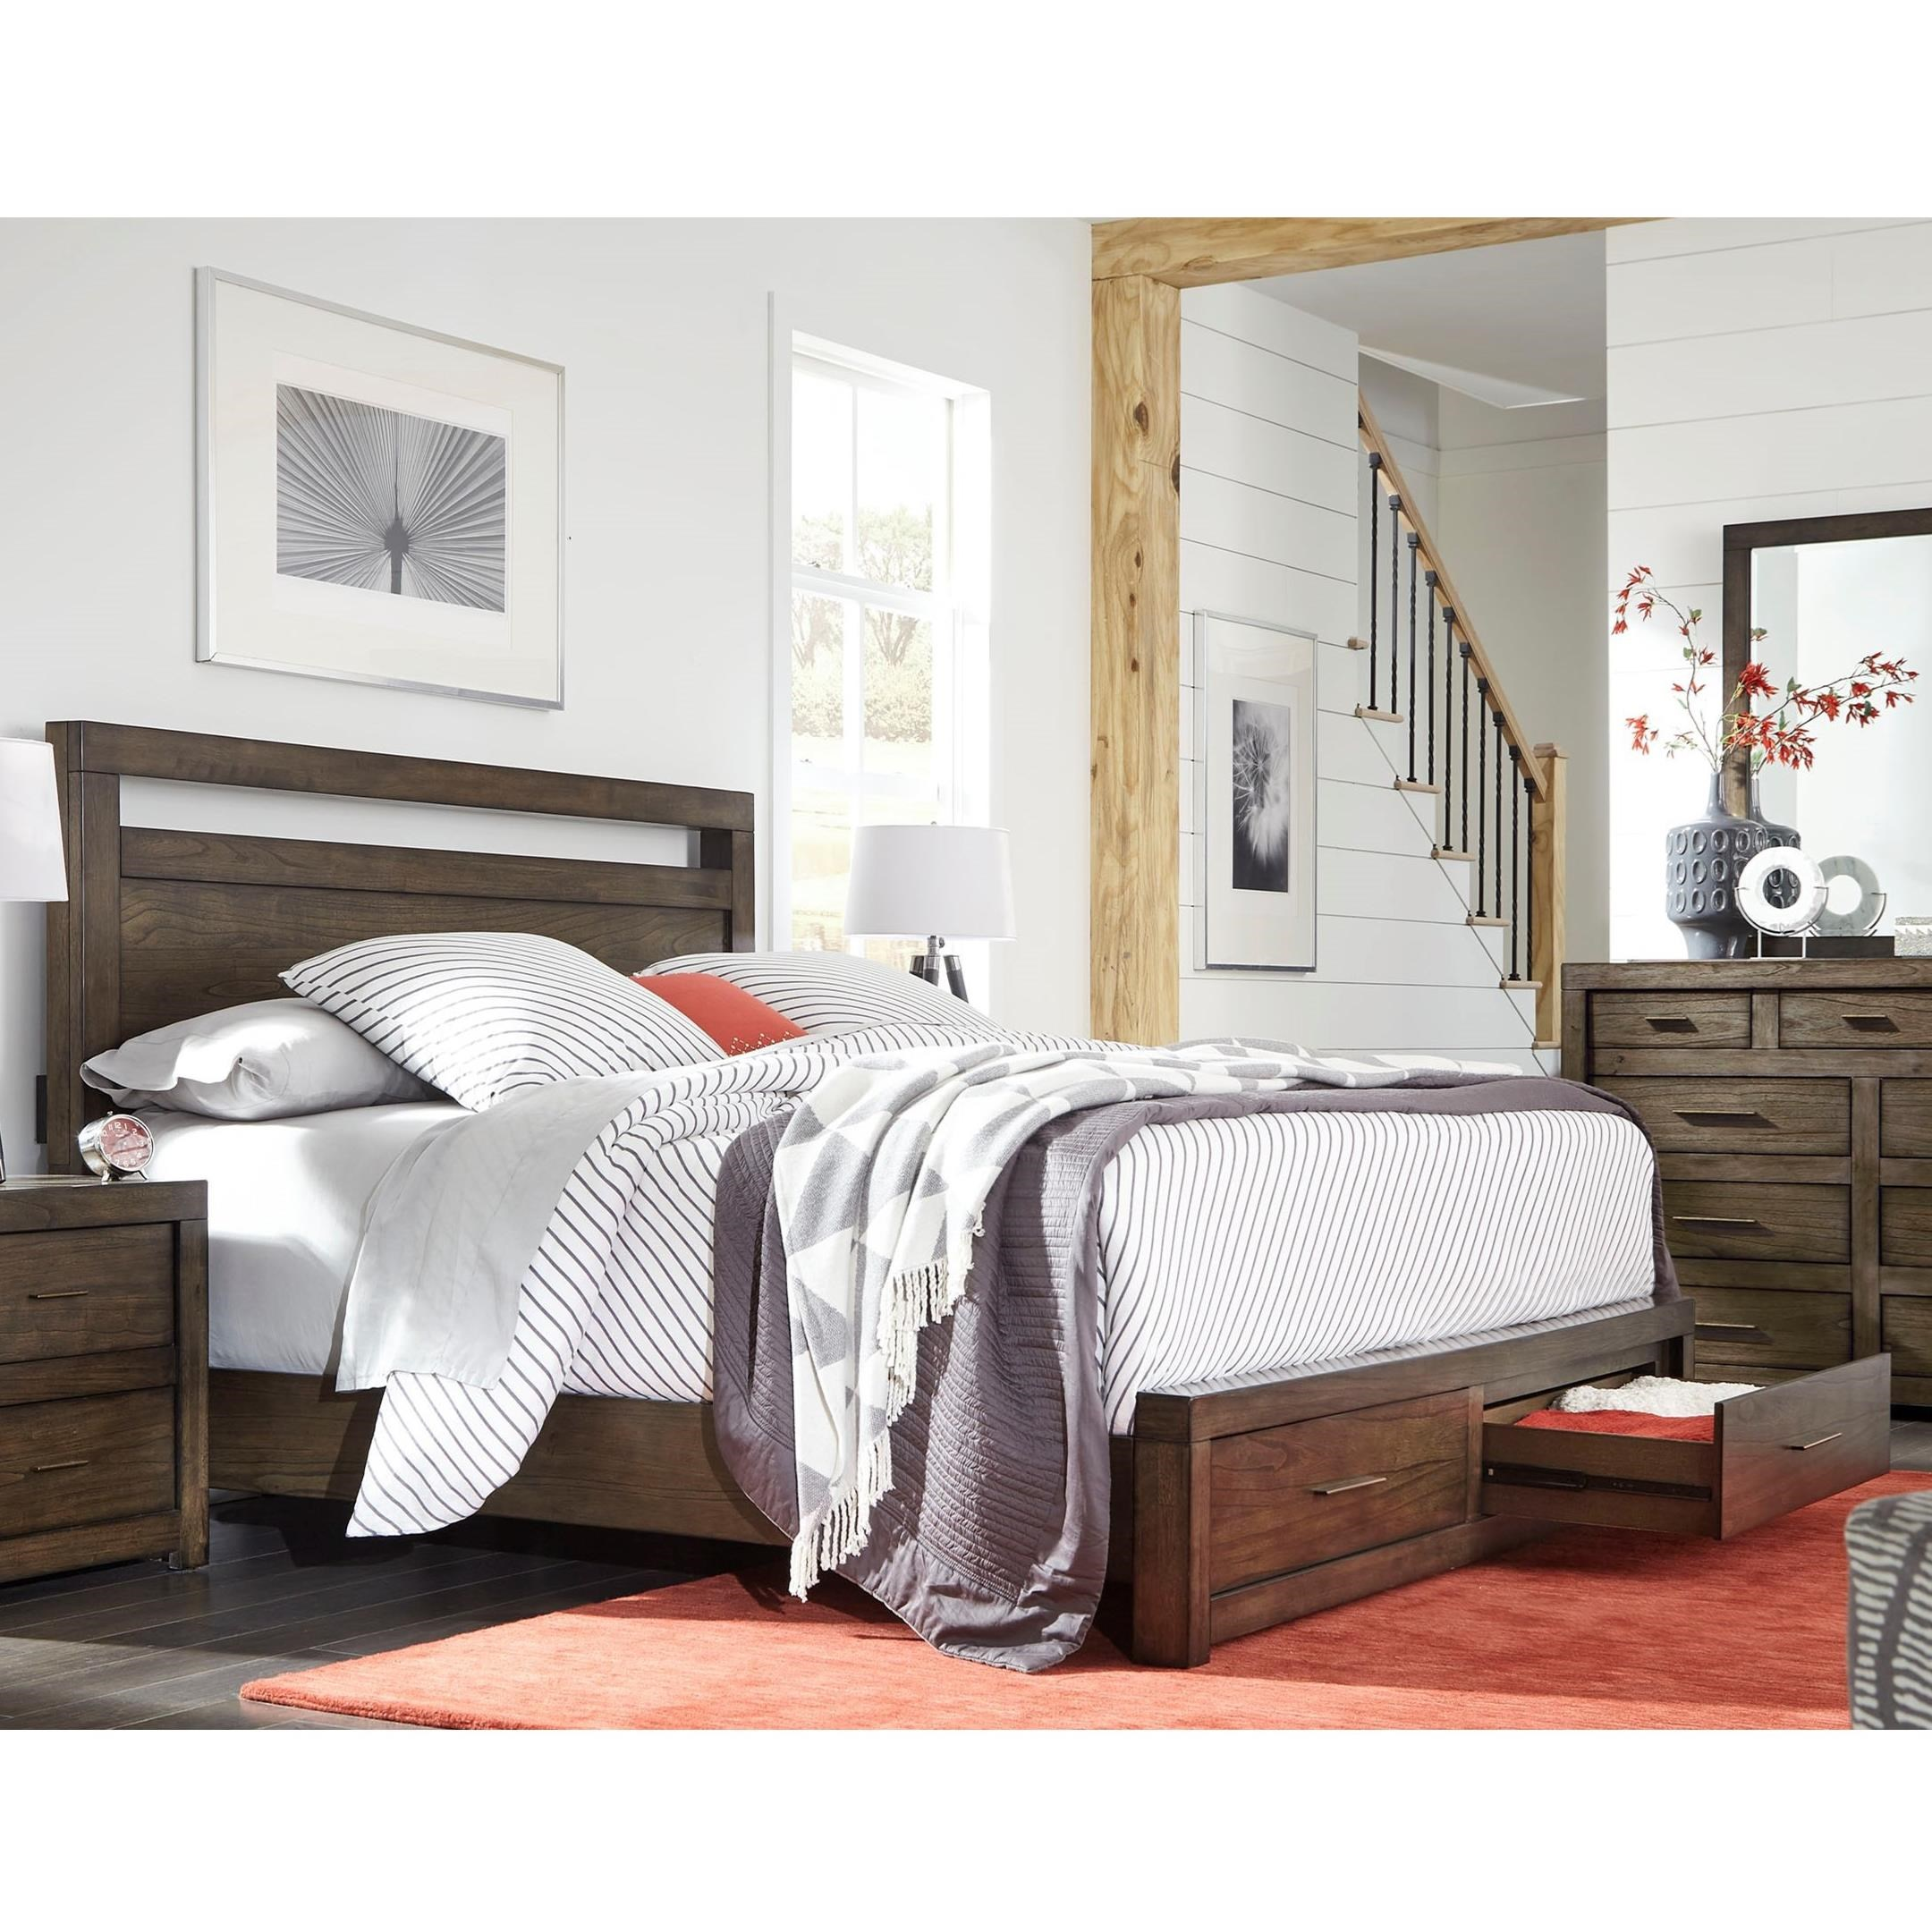 Aspenhome Modern Loft Cal King Panel Storage Bed - Item Number: IML-415+407D+410-BRN